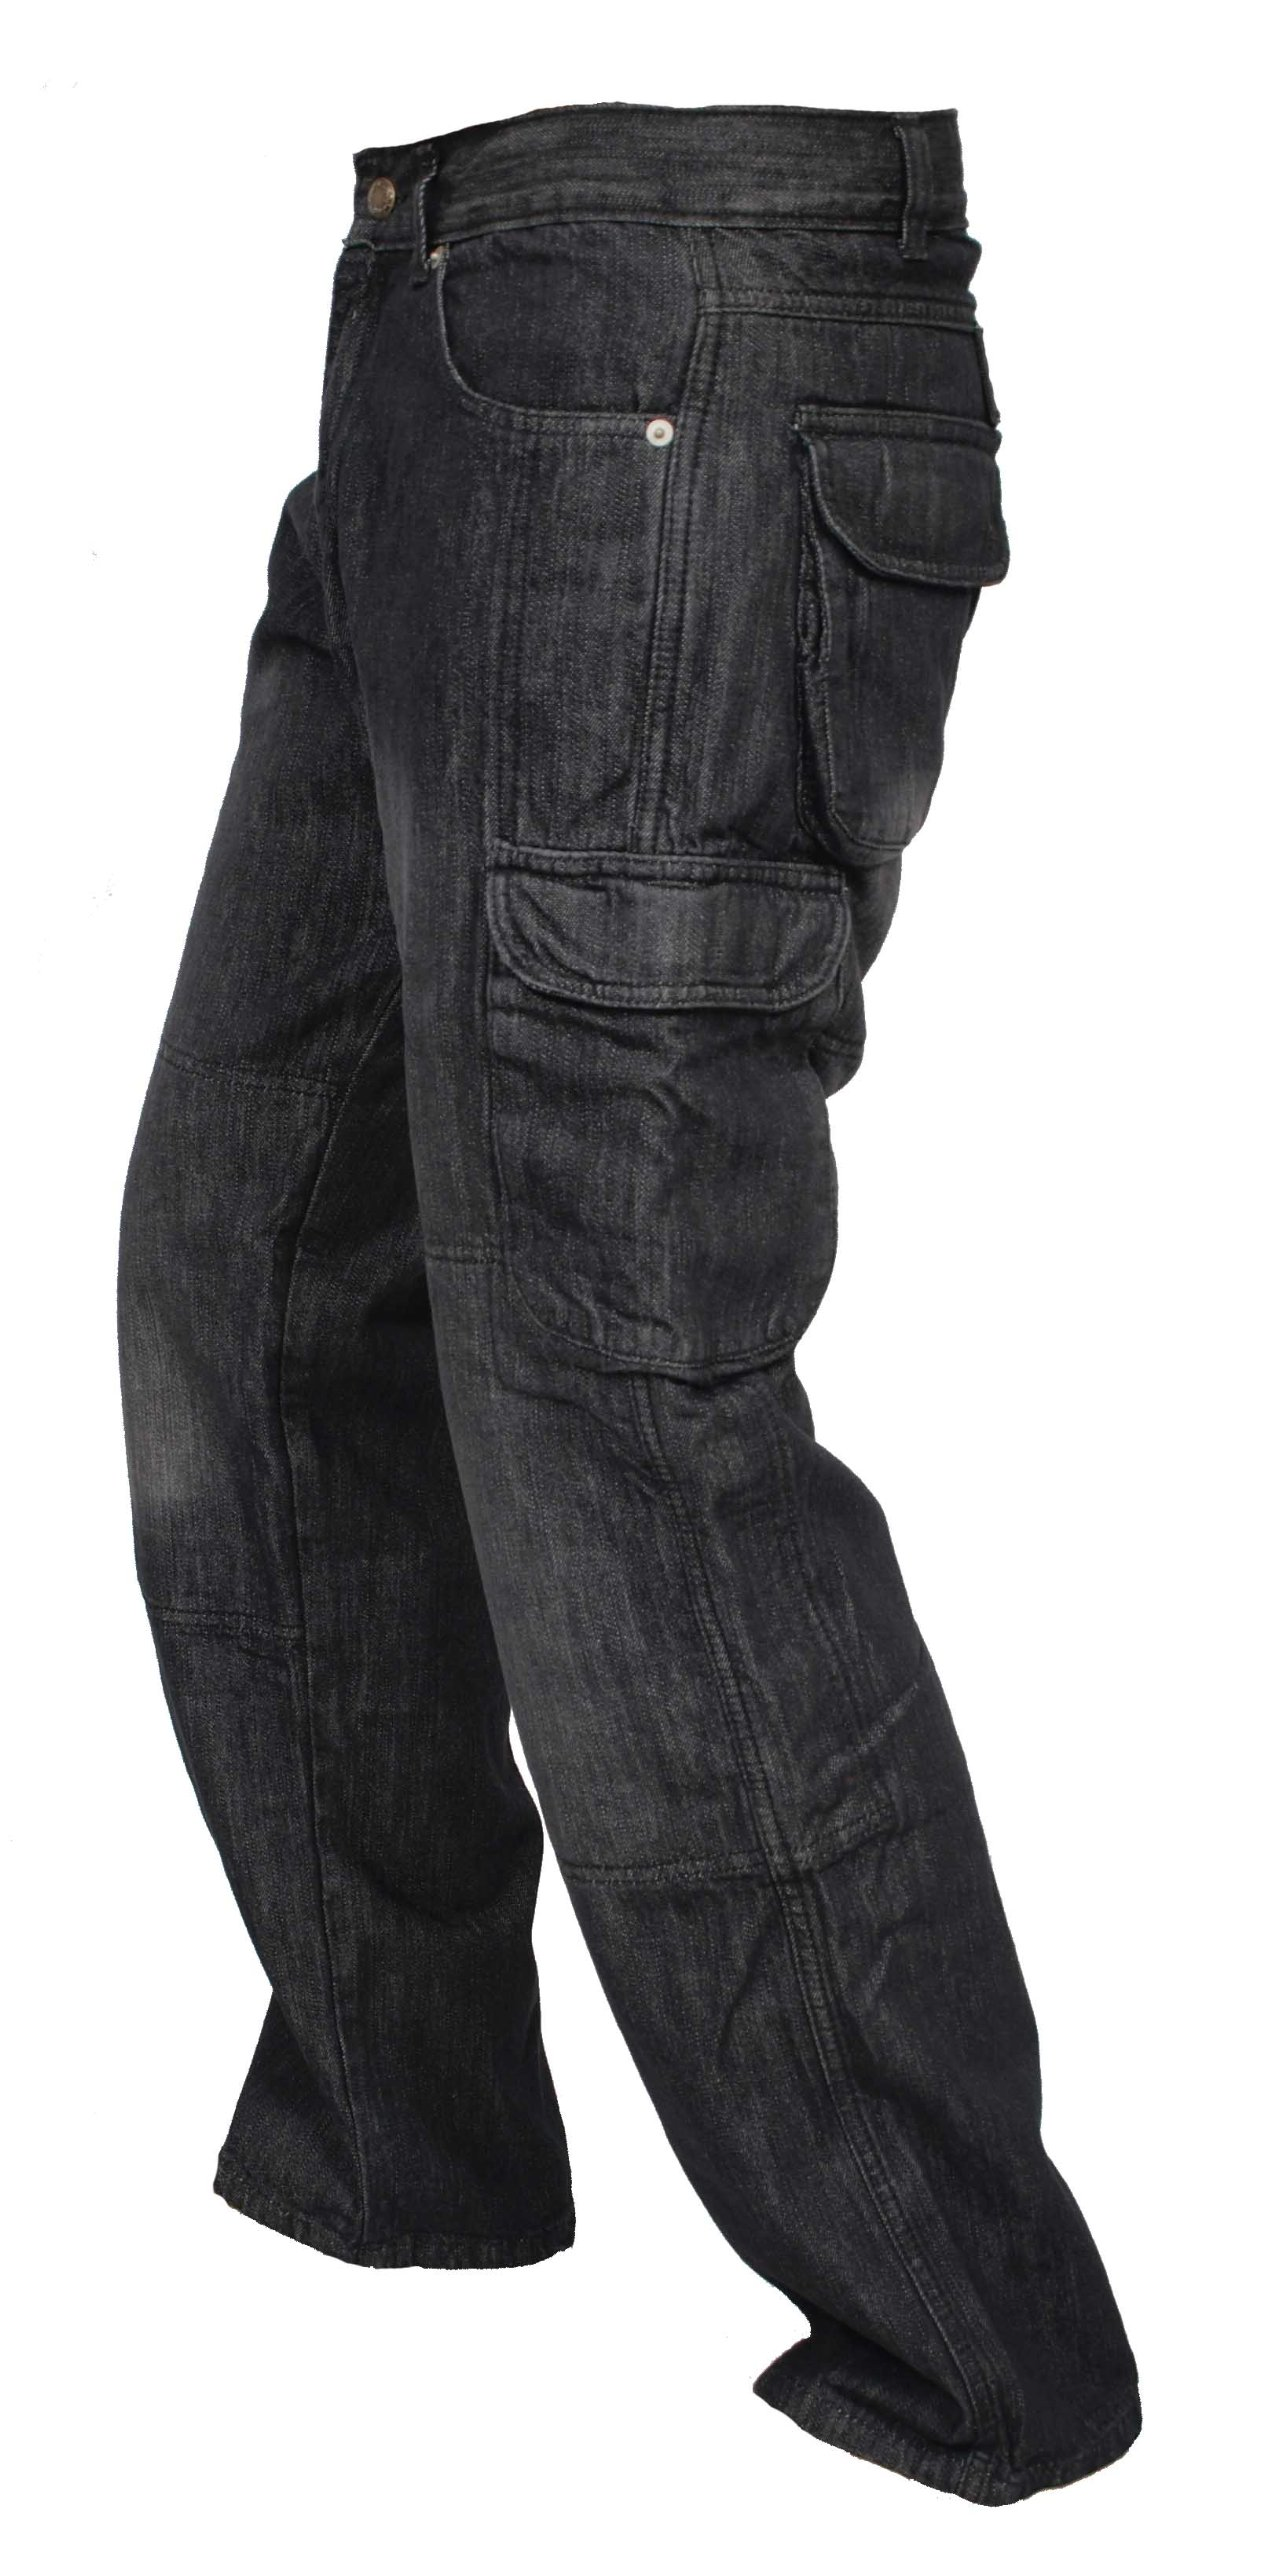 Newfacelook Denim Cargo Motorbike Sports Jeans Aramid Protection Lining I-102 Black